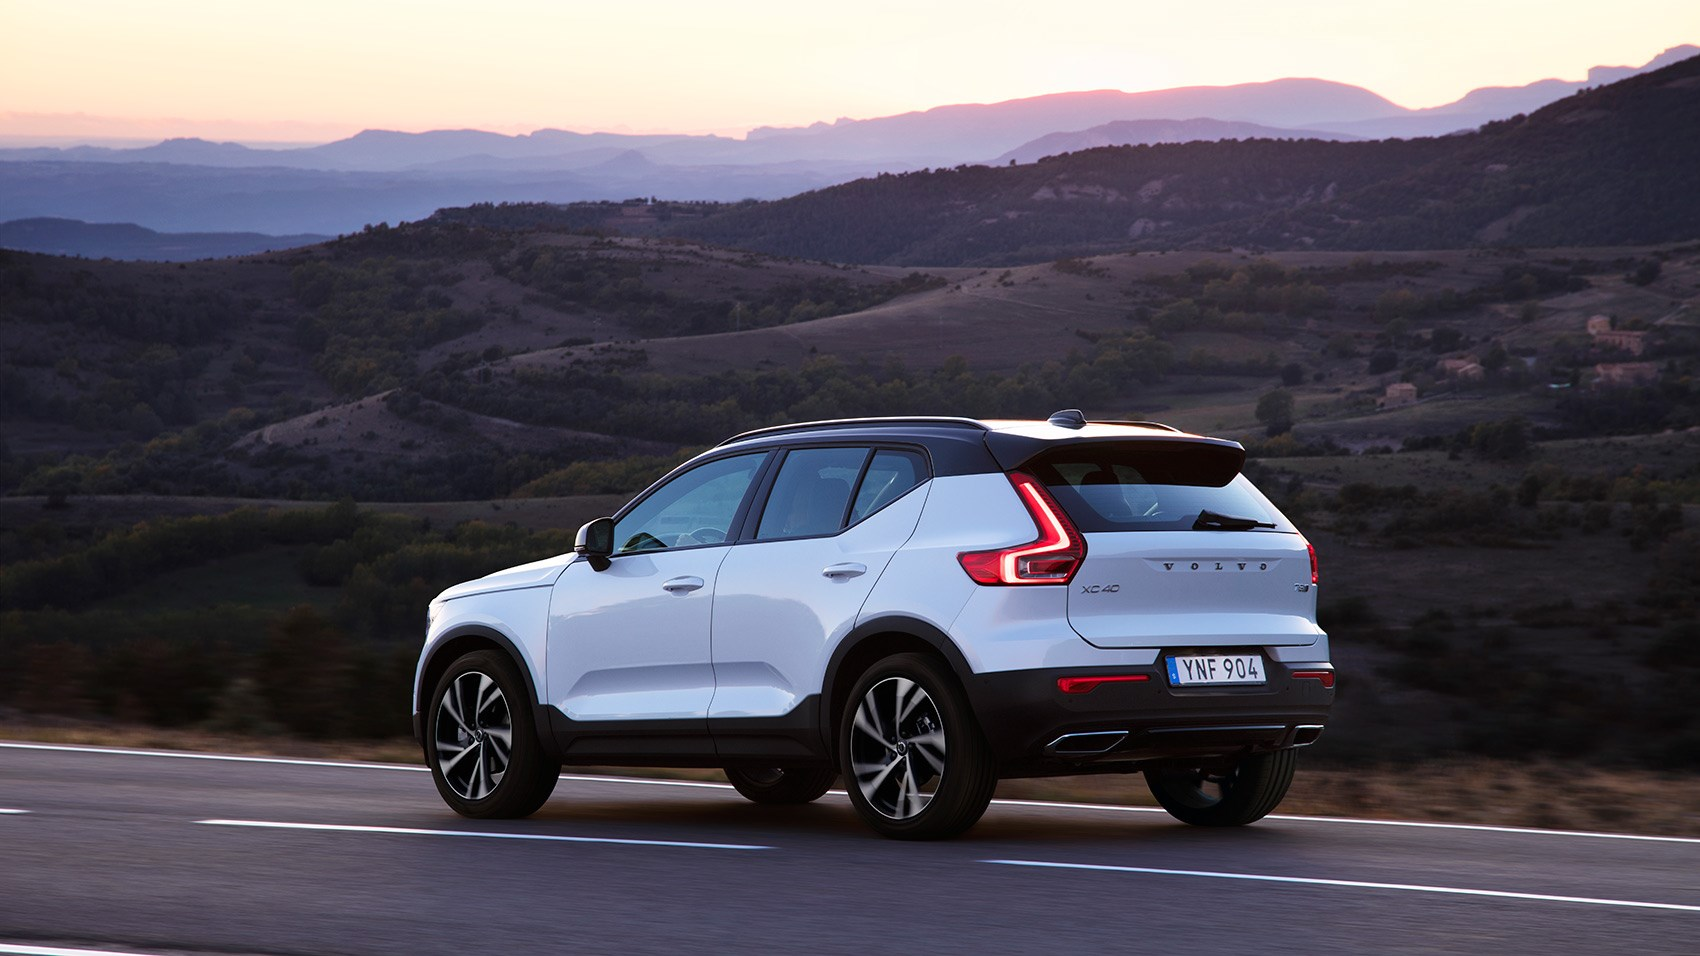 Volvo XC40 SUV review: specs, prices, pictures | CAR Magazine